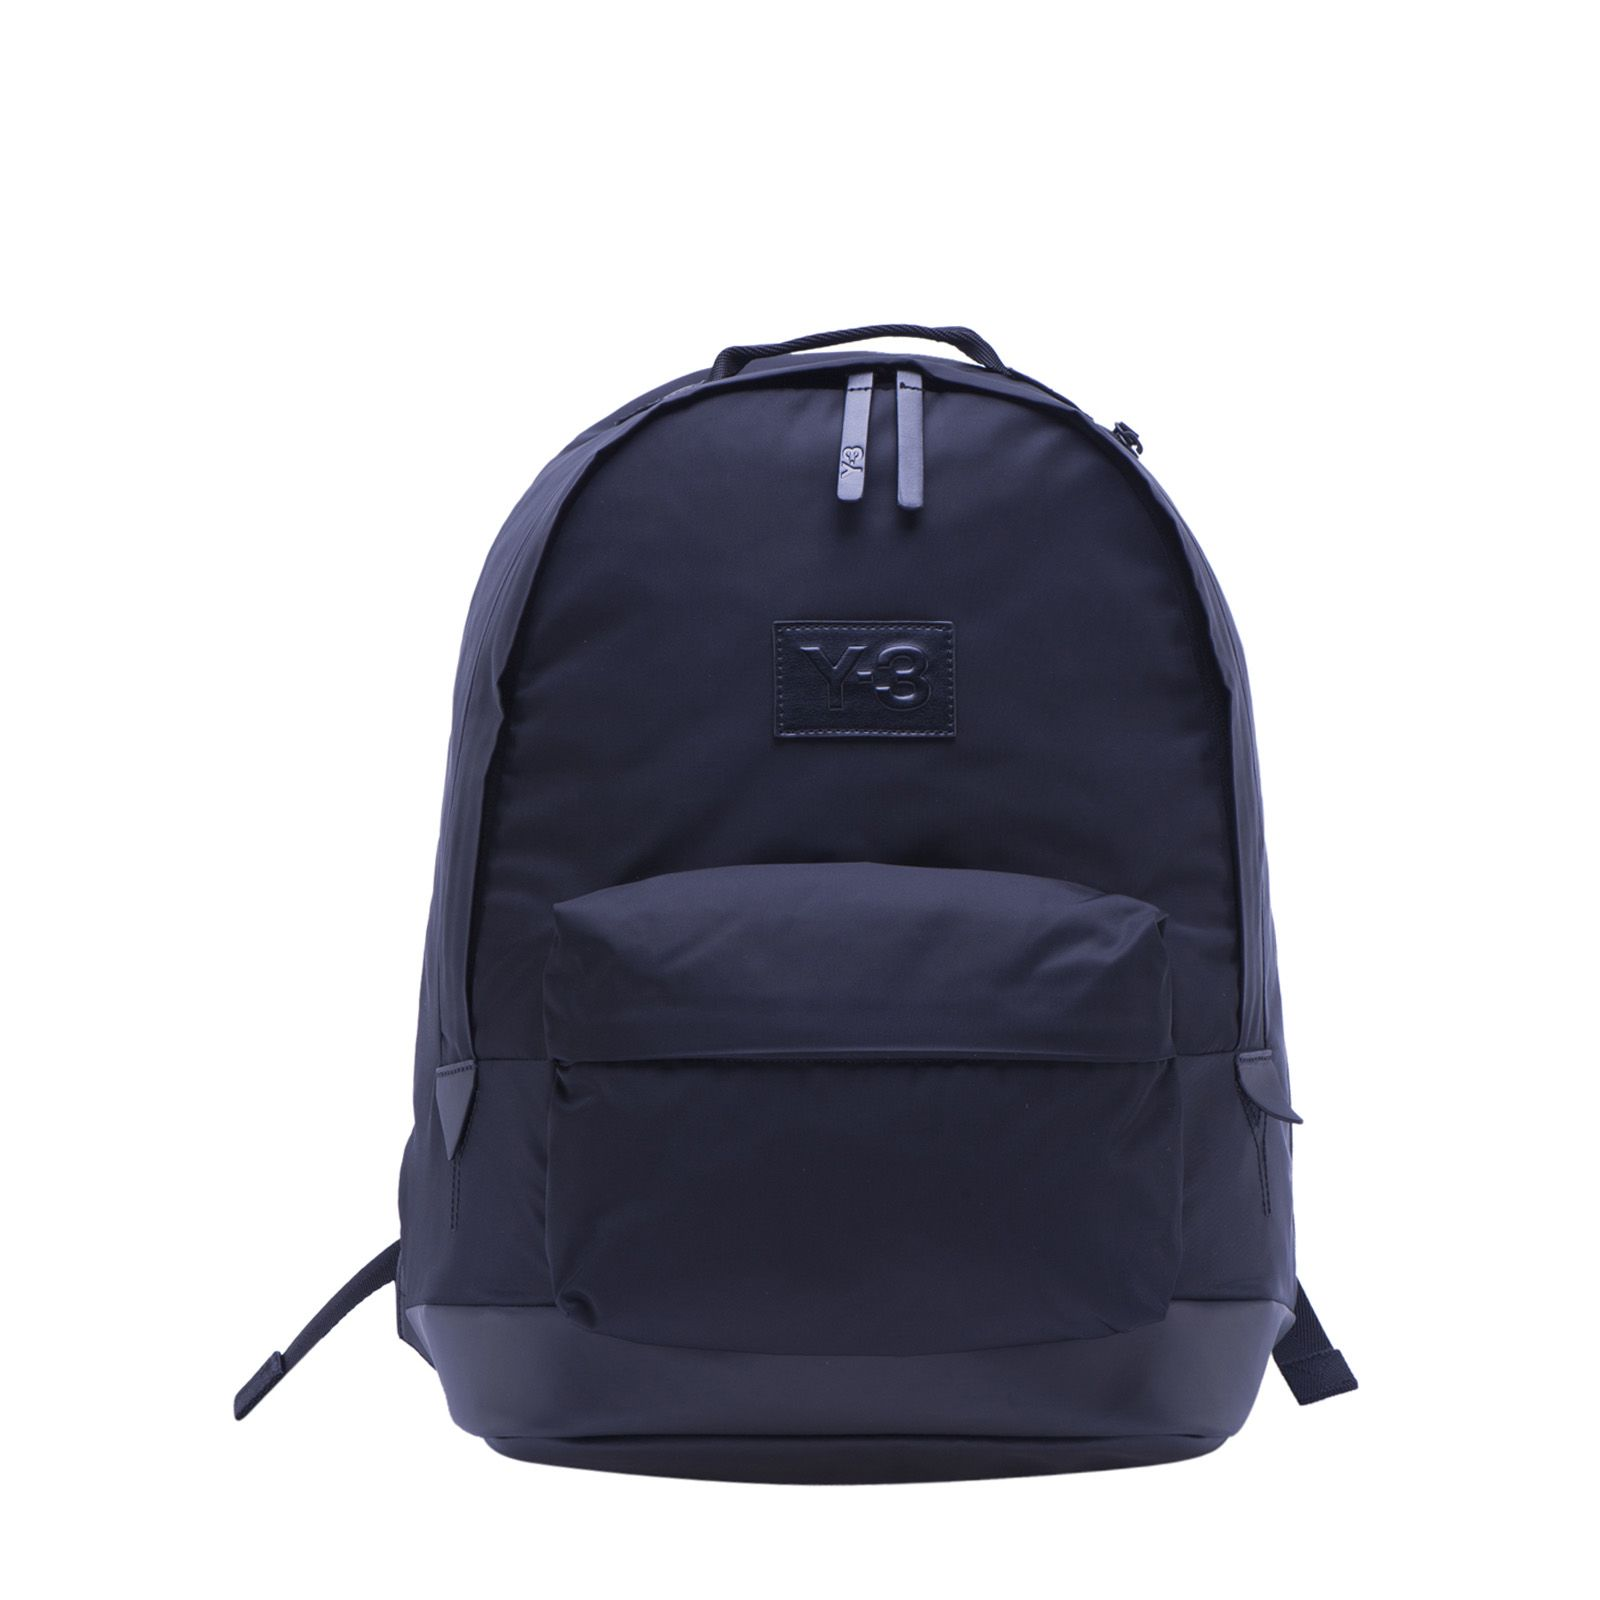 8b0ea6705392 Y-3 Adidas Tech Lite Backpack In Black